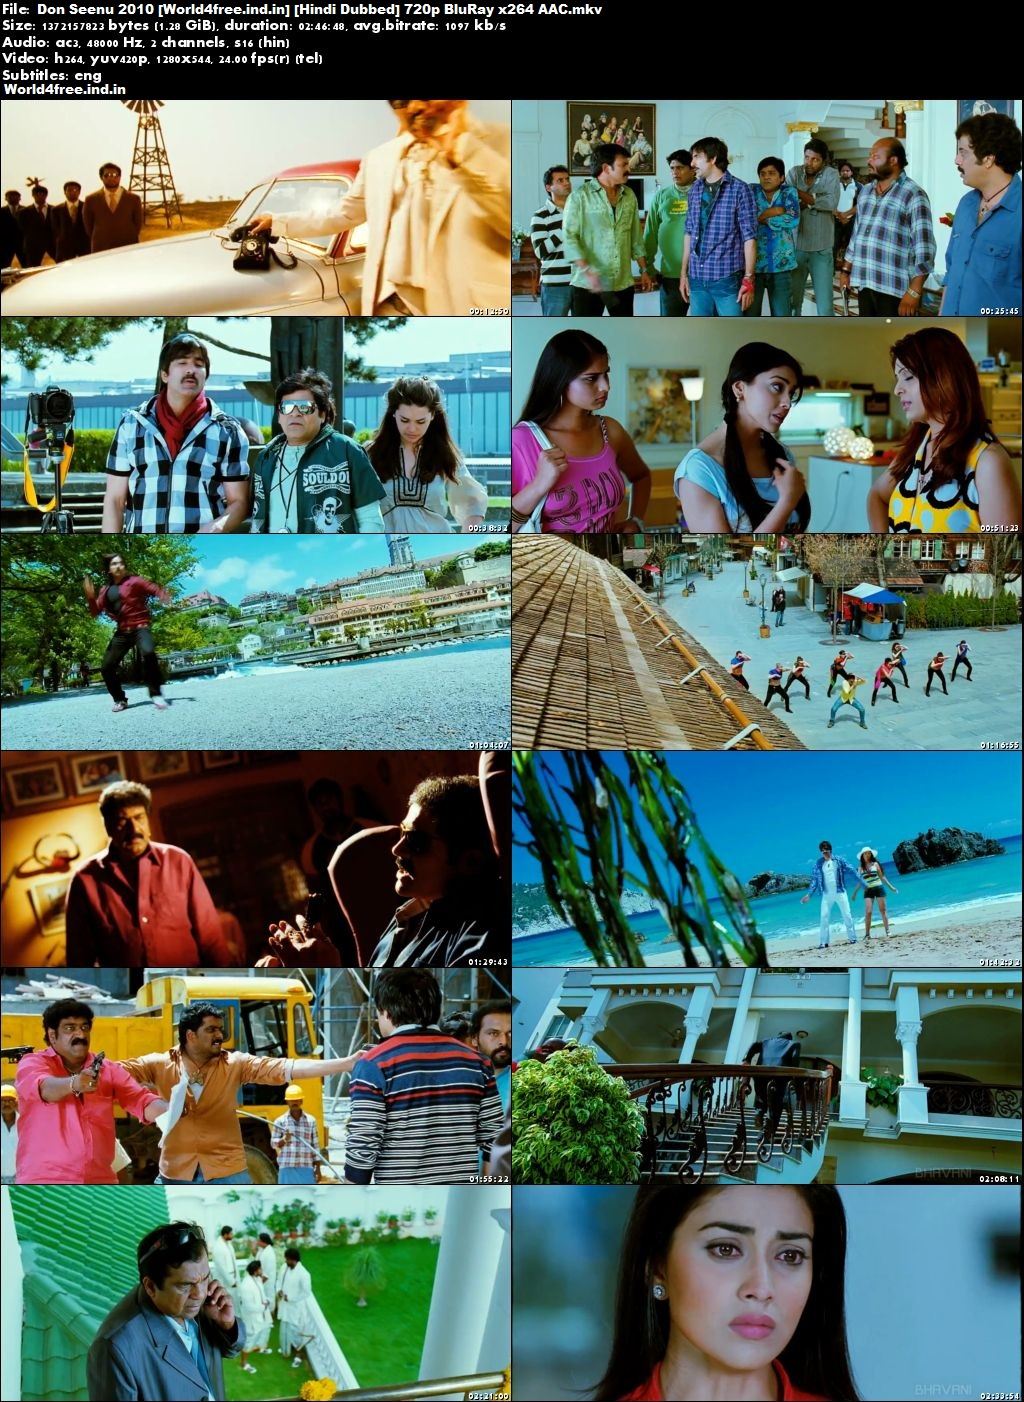 Don Seenu 2010 World4free.ind.in BRRip 720p Hindi Dubbed Movie Download